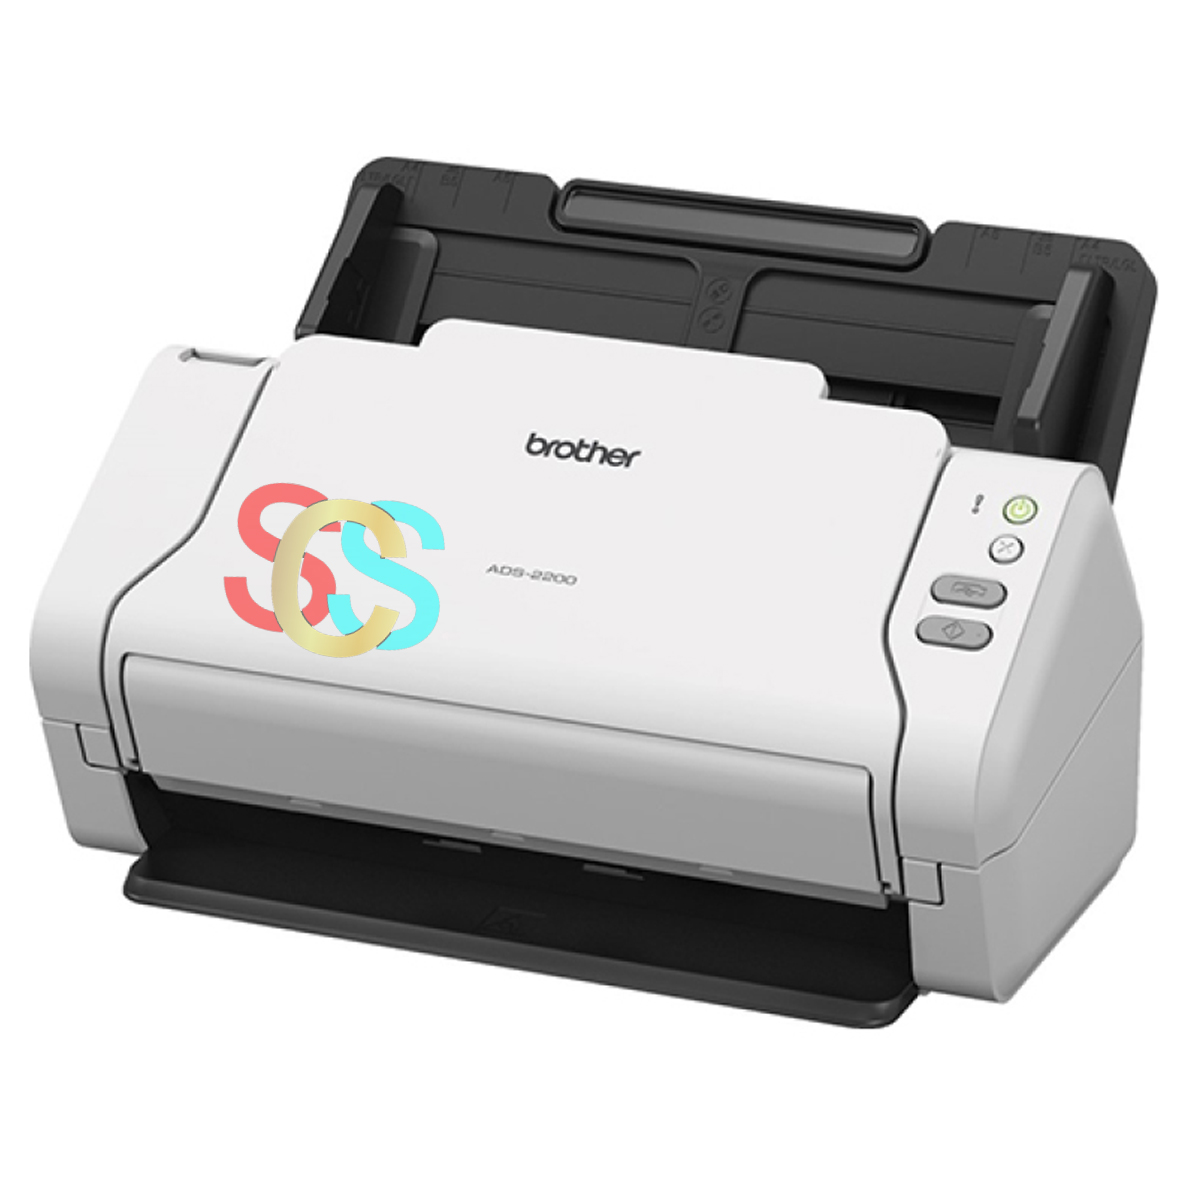 Brother ADS-2200 Sheetfed Scanner ADF, Duplex